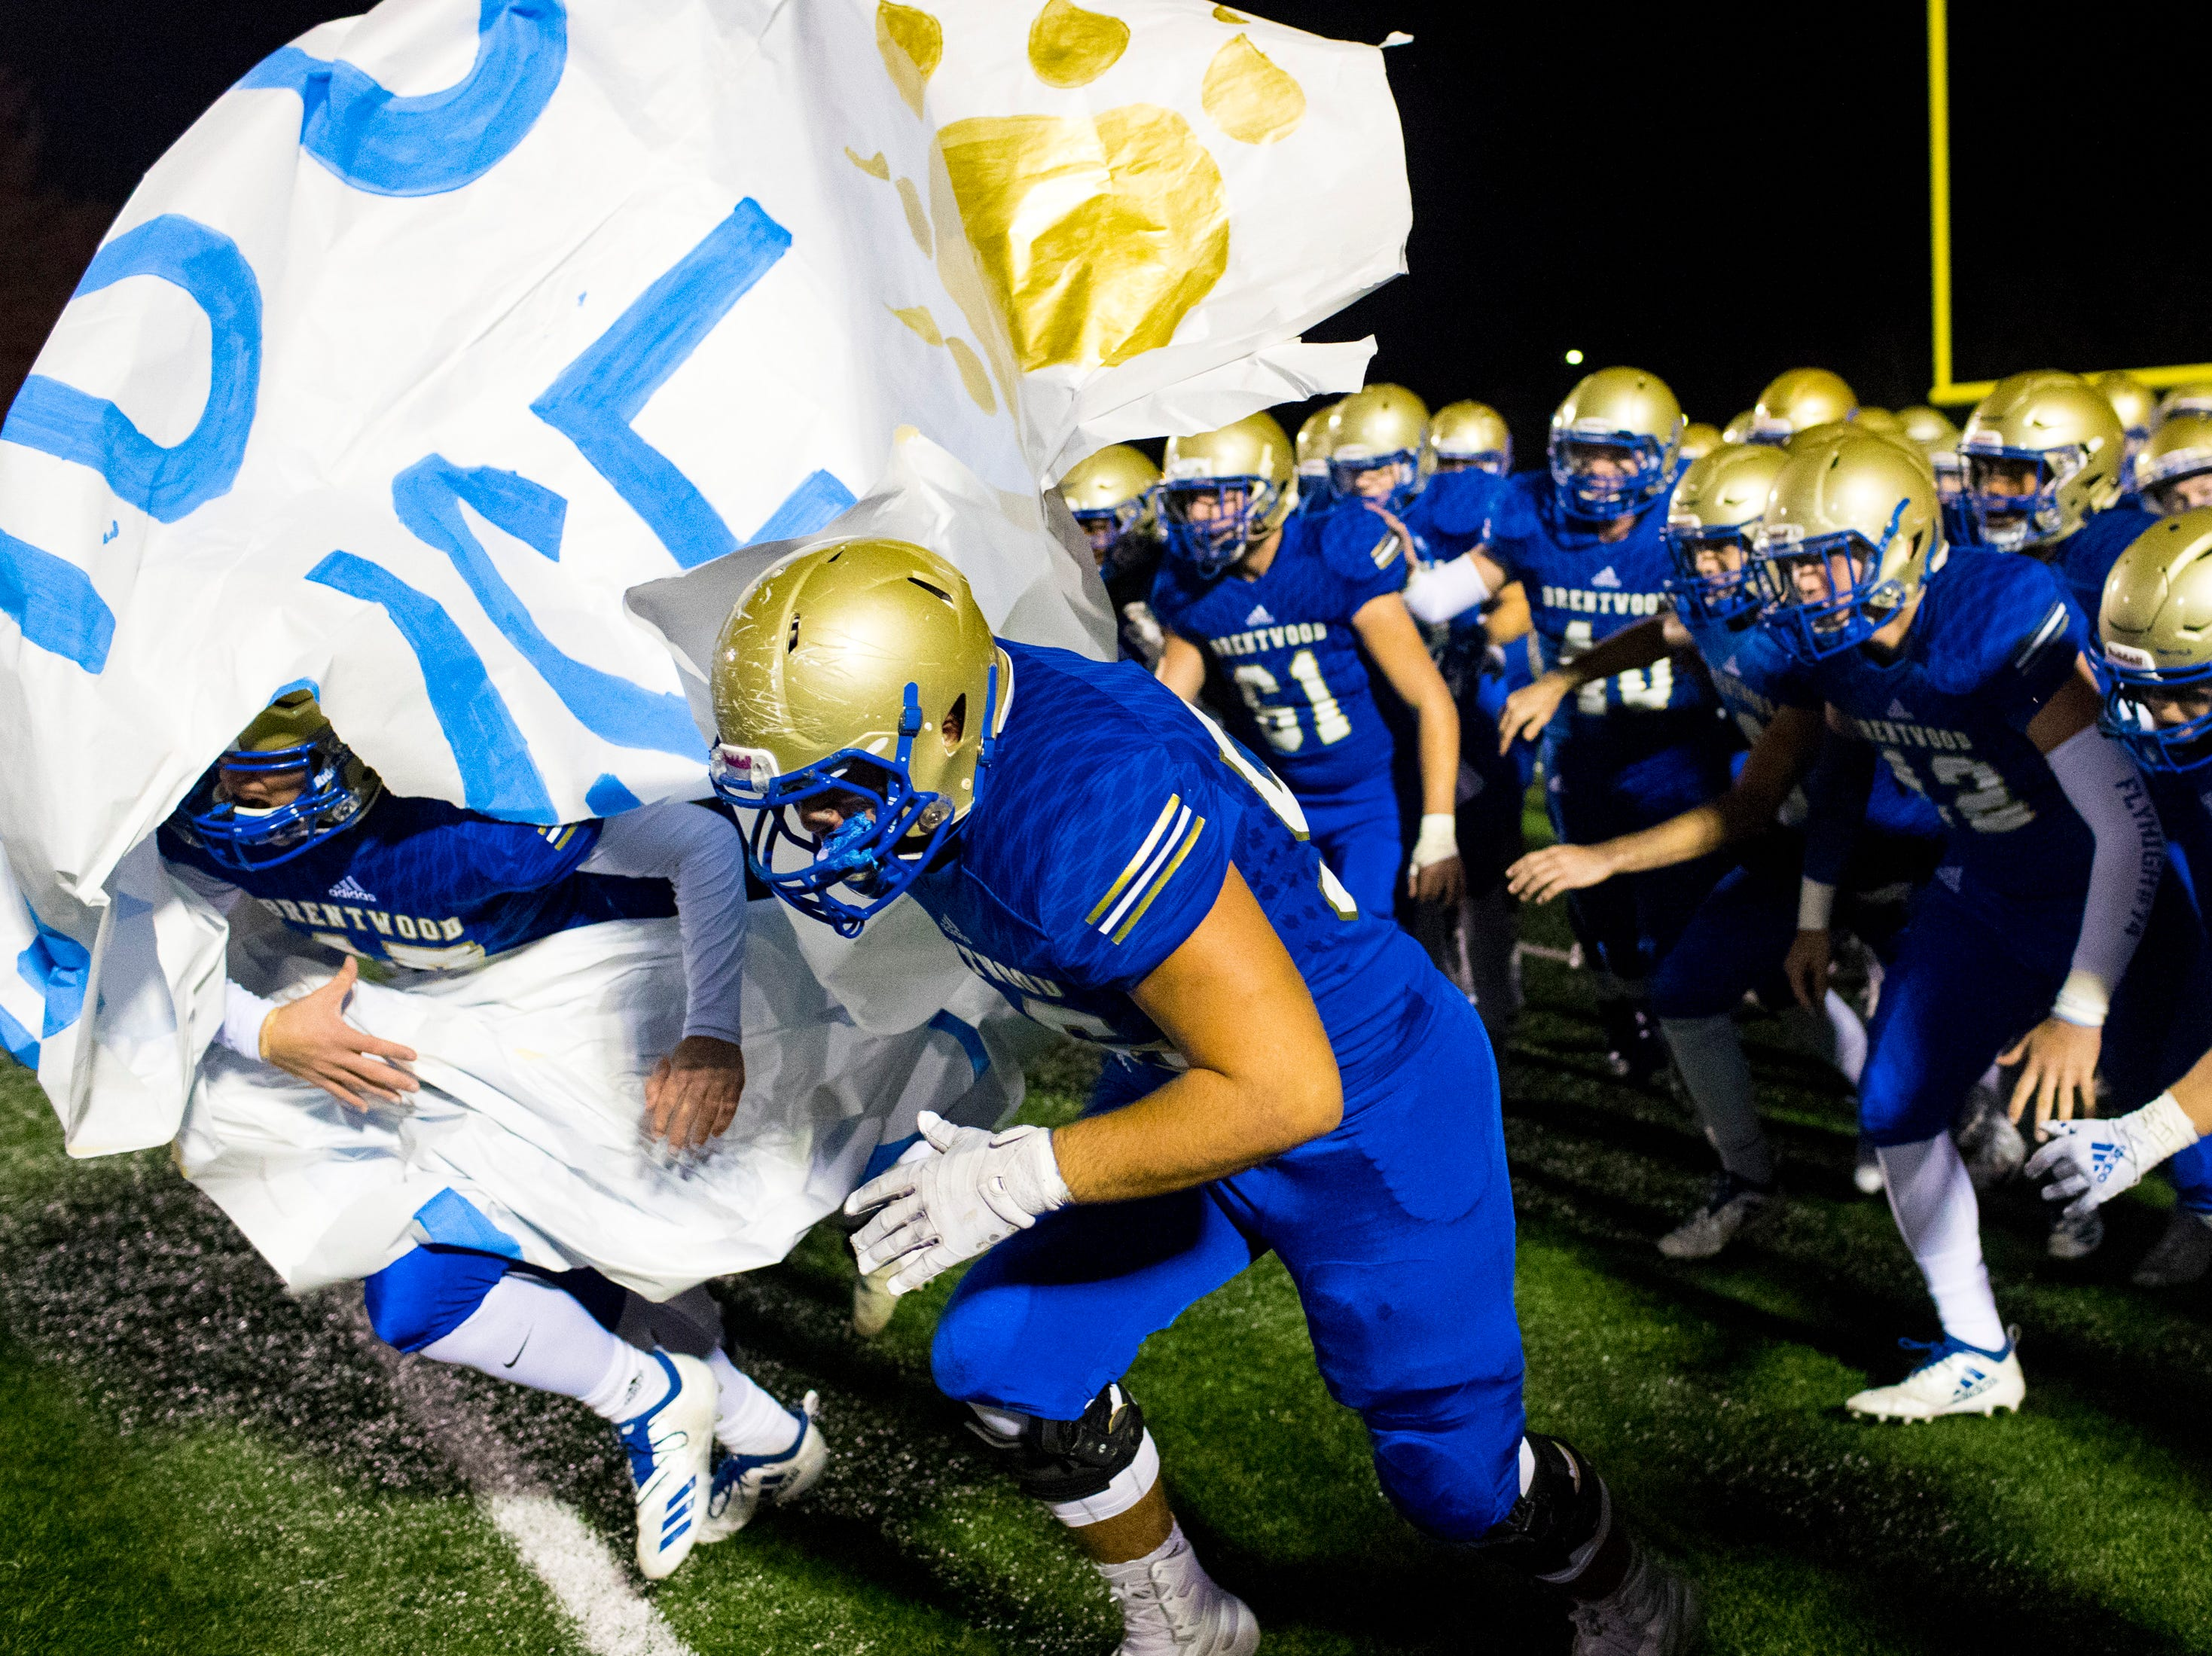 Brentwood's players take the field before Brentwood's game against Ravenwood at Brentwood High School in Brentwood on Friday, Nov. 16, 2018.